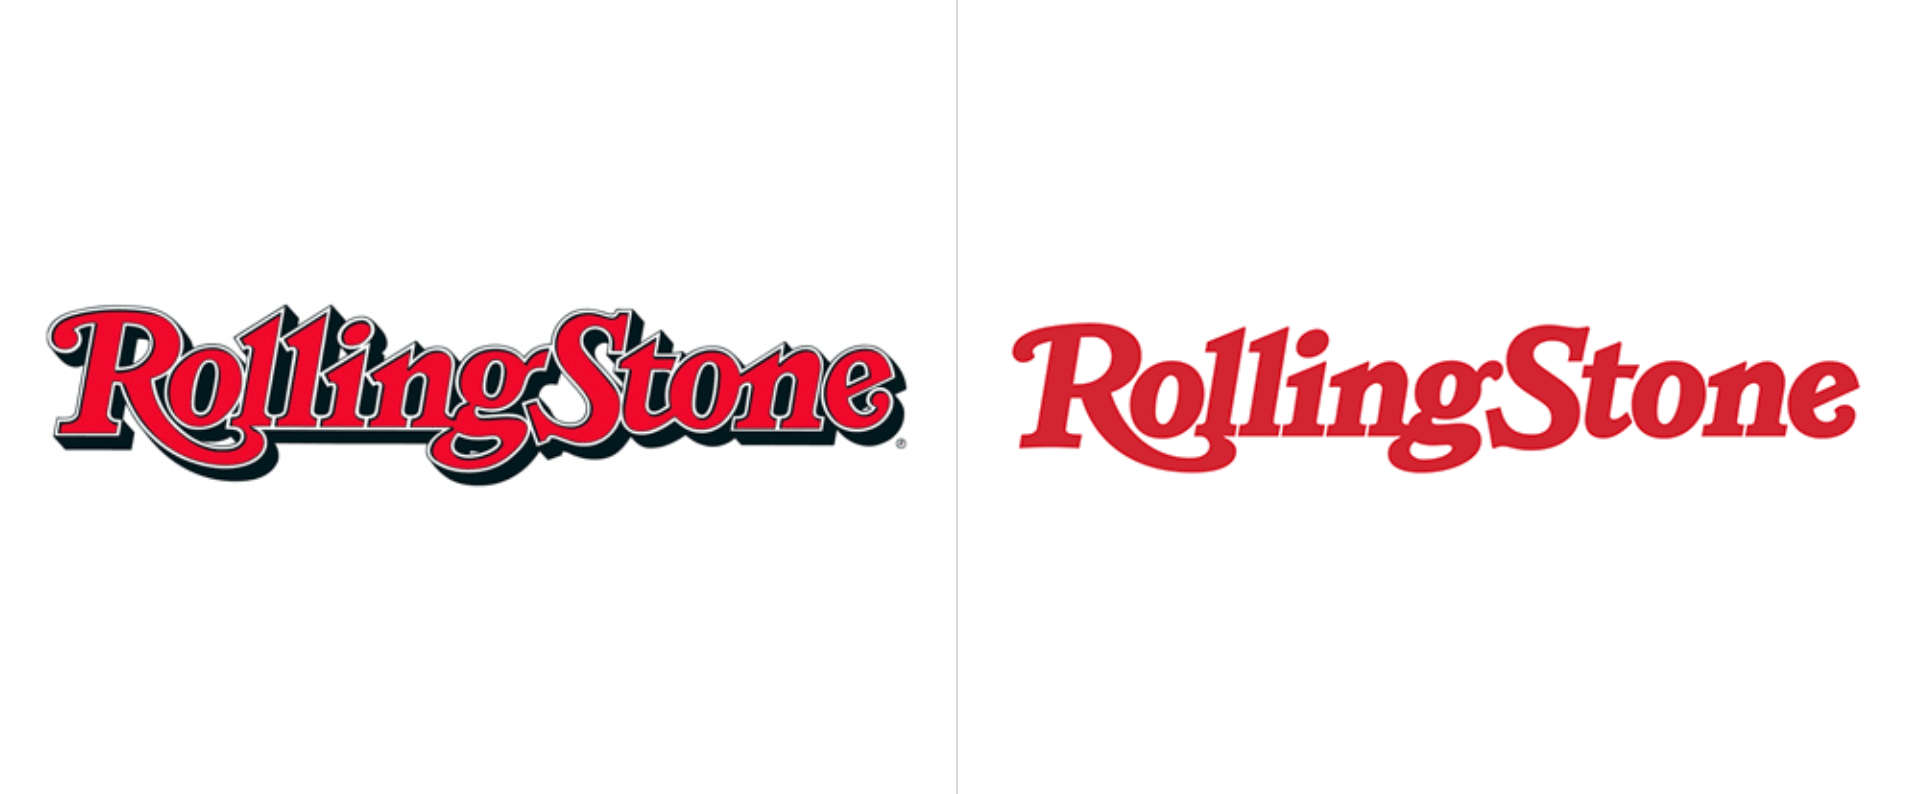 Clean and flat logo trend followed by rolling stones